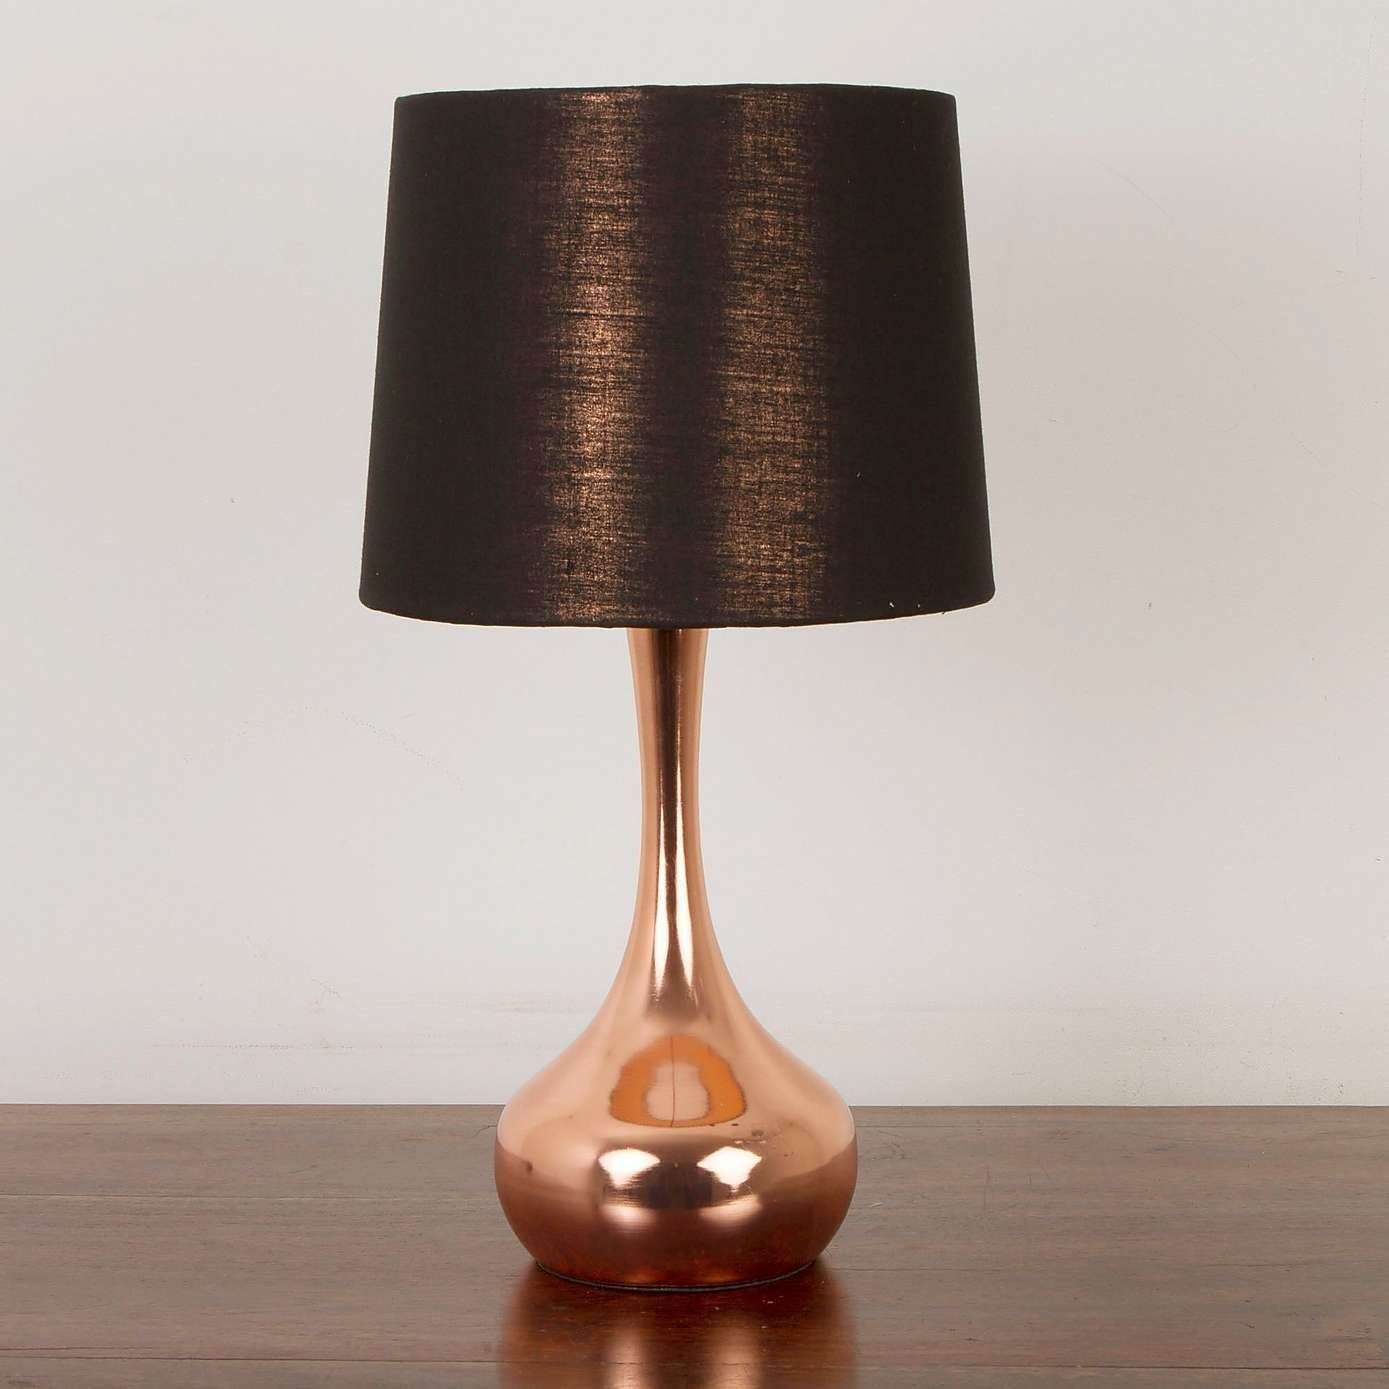 Dunelm lampshades for table lamps httpargharts pinterest dunelm lampshades for table lamps mozeypictures Choice Image